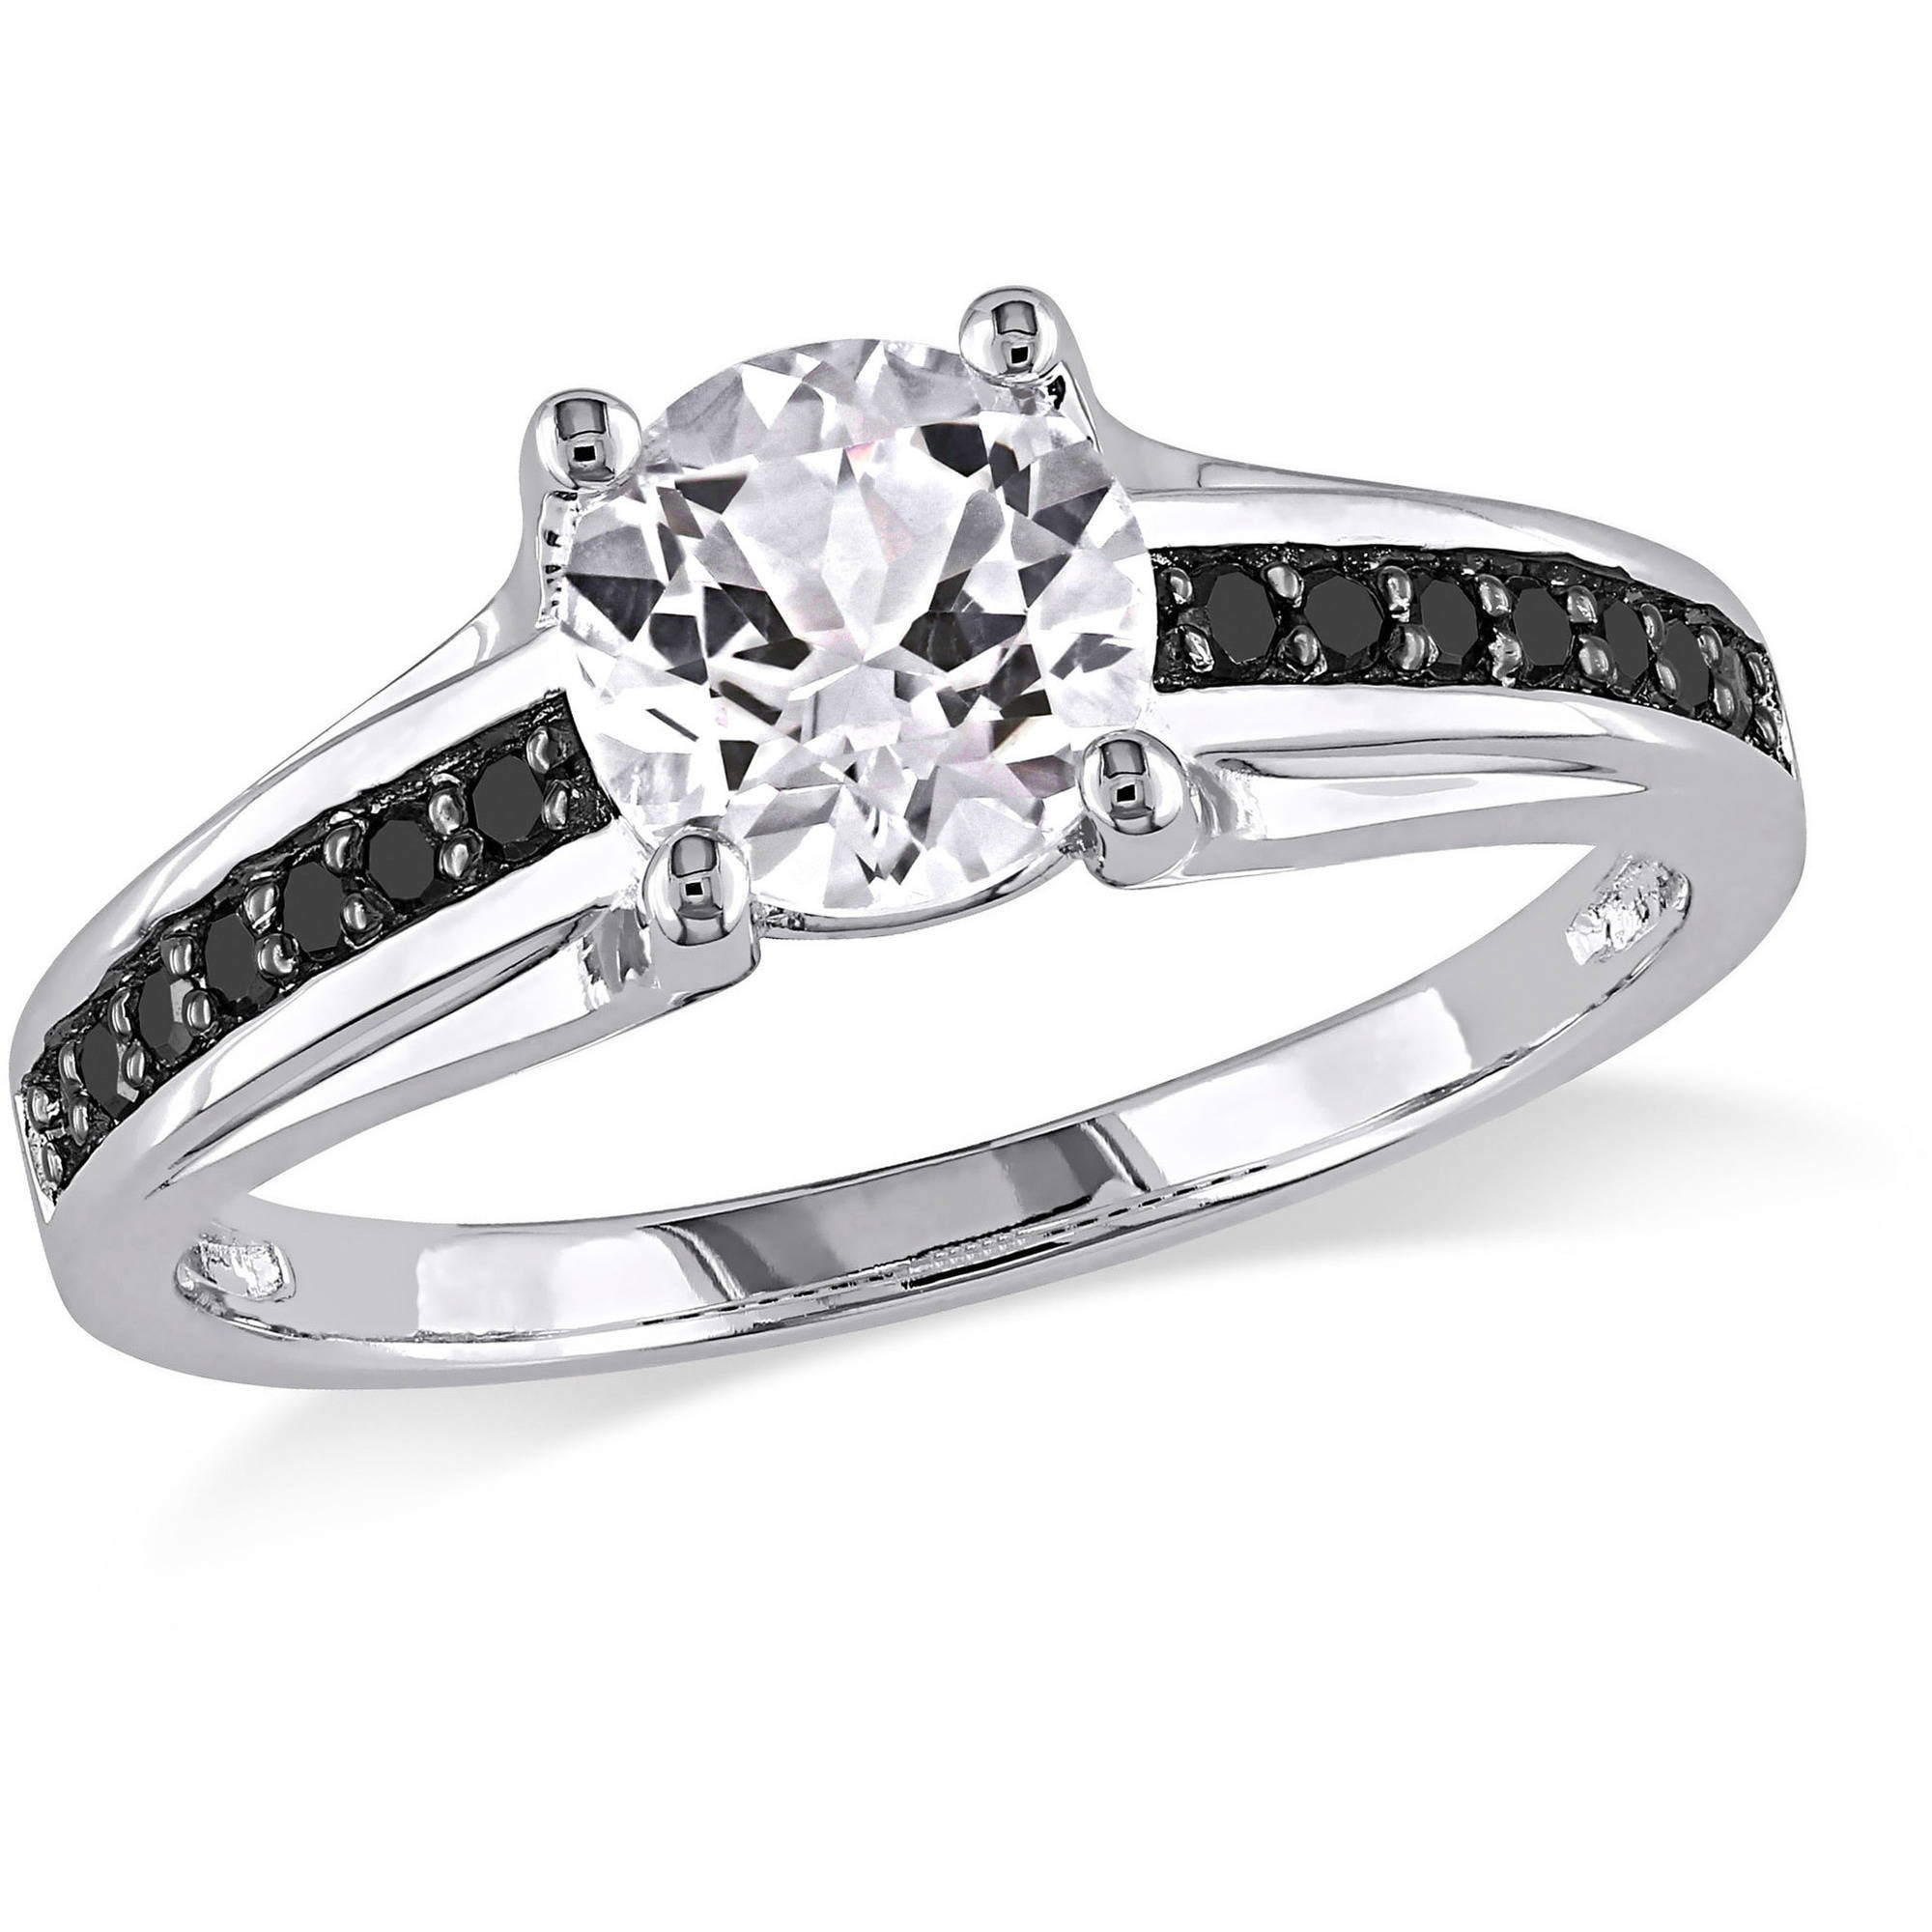 bands diamonds wedding angelitos jewellery product wg categories y ring ronda diamond canada carrera arrera black with category